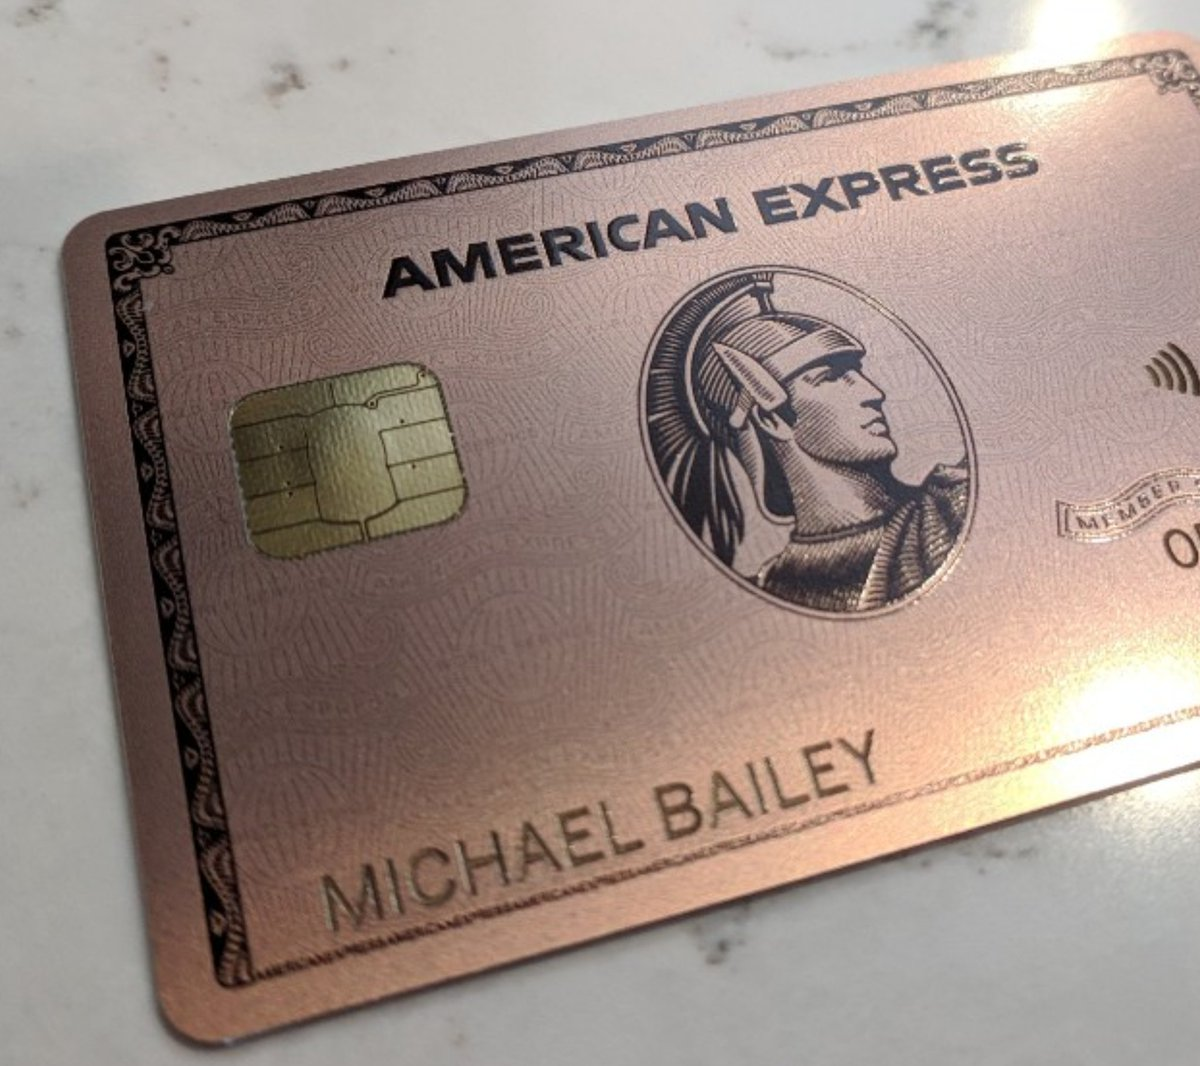 "Michael Bailey on Twitter: ""Got my new Rose Gold Amex!… """